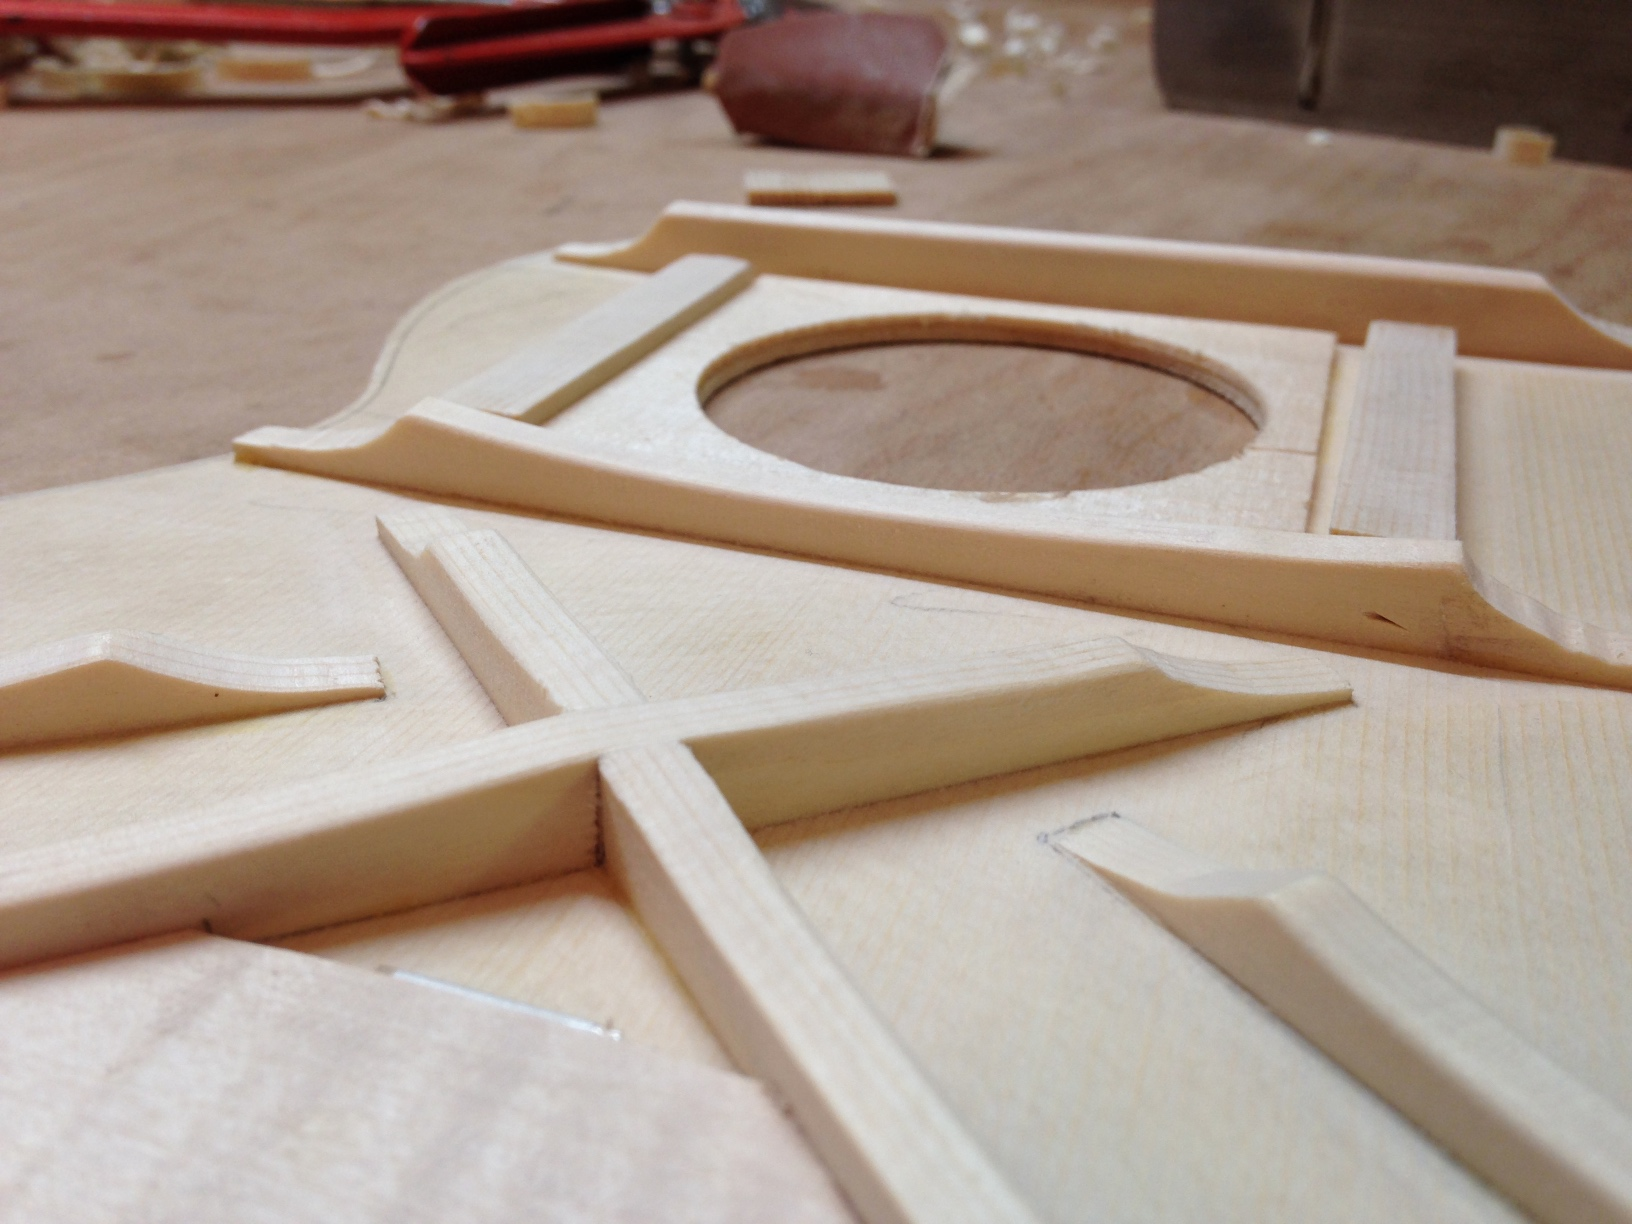 The photo shows the underside of a small guitar-shaped musical instrument soundboard, with traverse and X bracing as well as soundhole support.